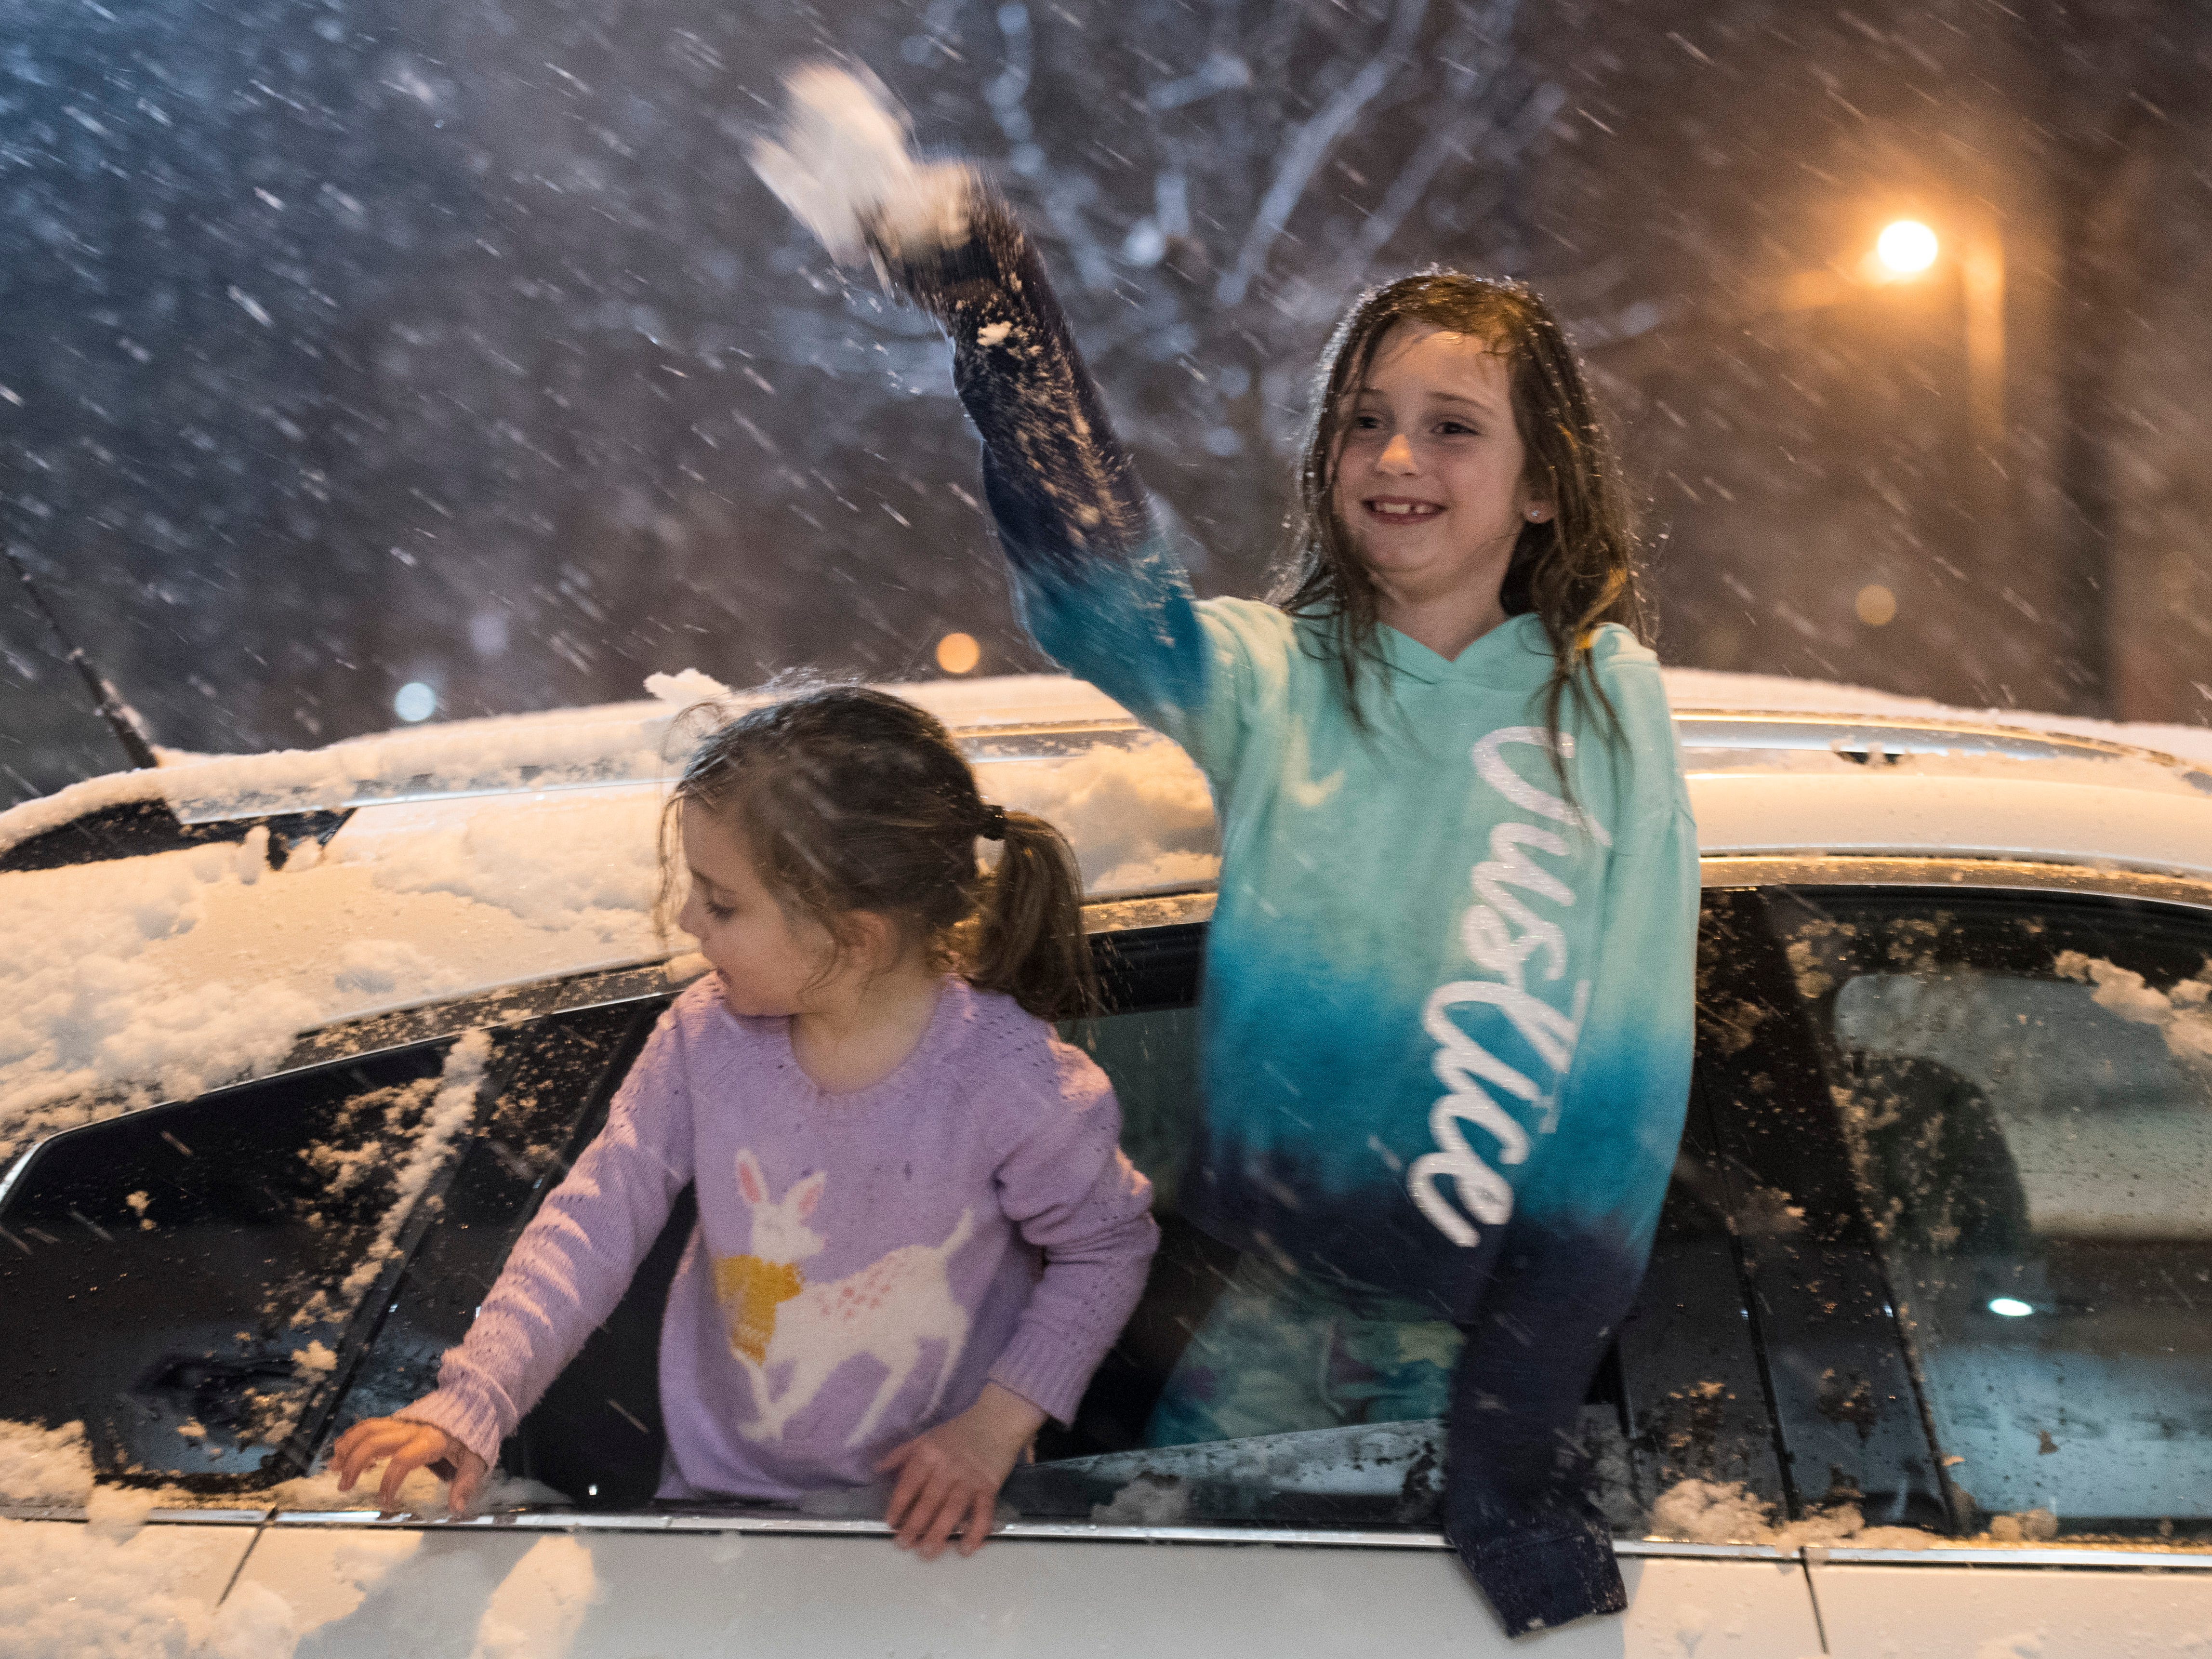 Scarlet, left, and Savannah Denton throw snowballs at their dad after ice cream at Milk and Sugar Scoop Shoppe on West Franklin Street Friday, Jan. 11, 2019.